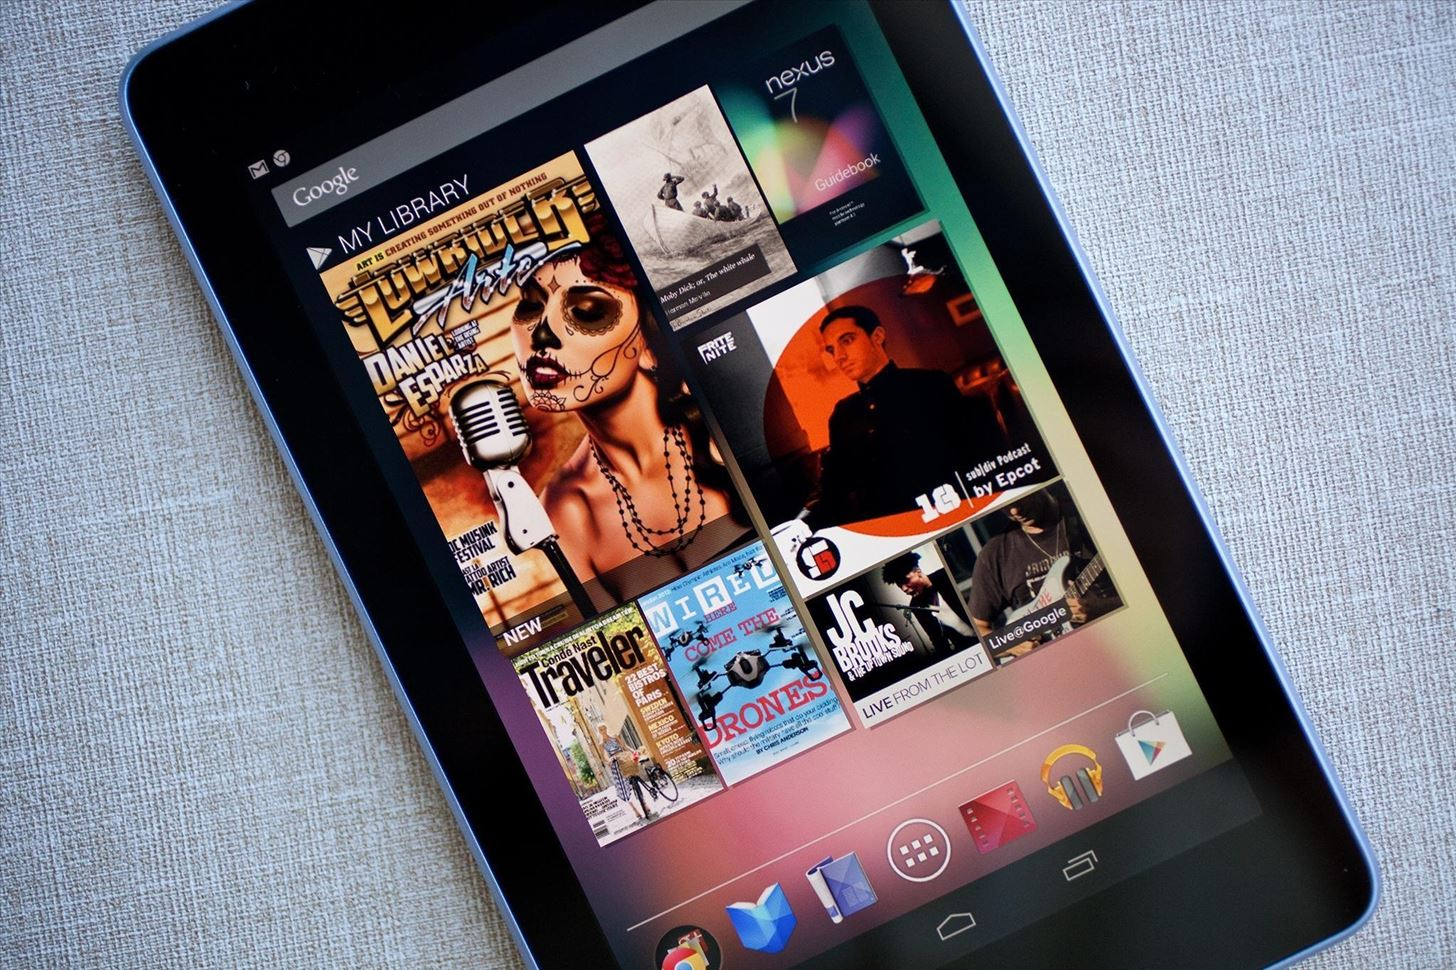 Speed Up Your Lagging Nexus 7 Running Android 4.2 Jelly Bean with This Quick Fix